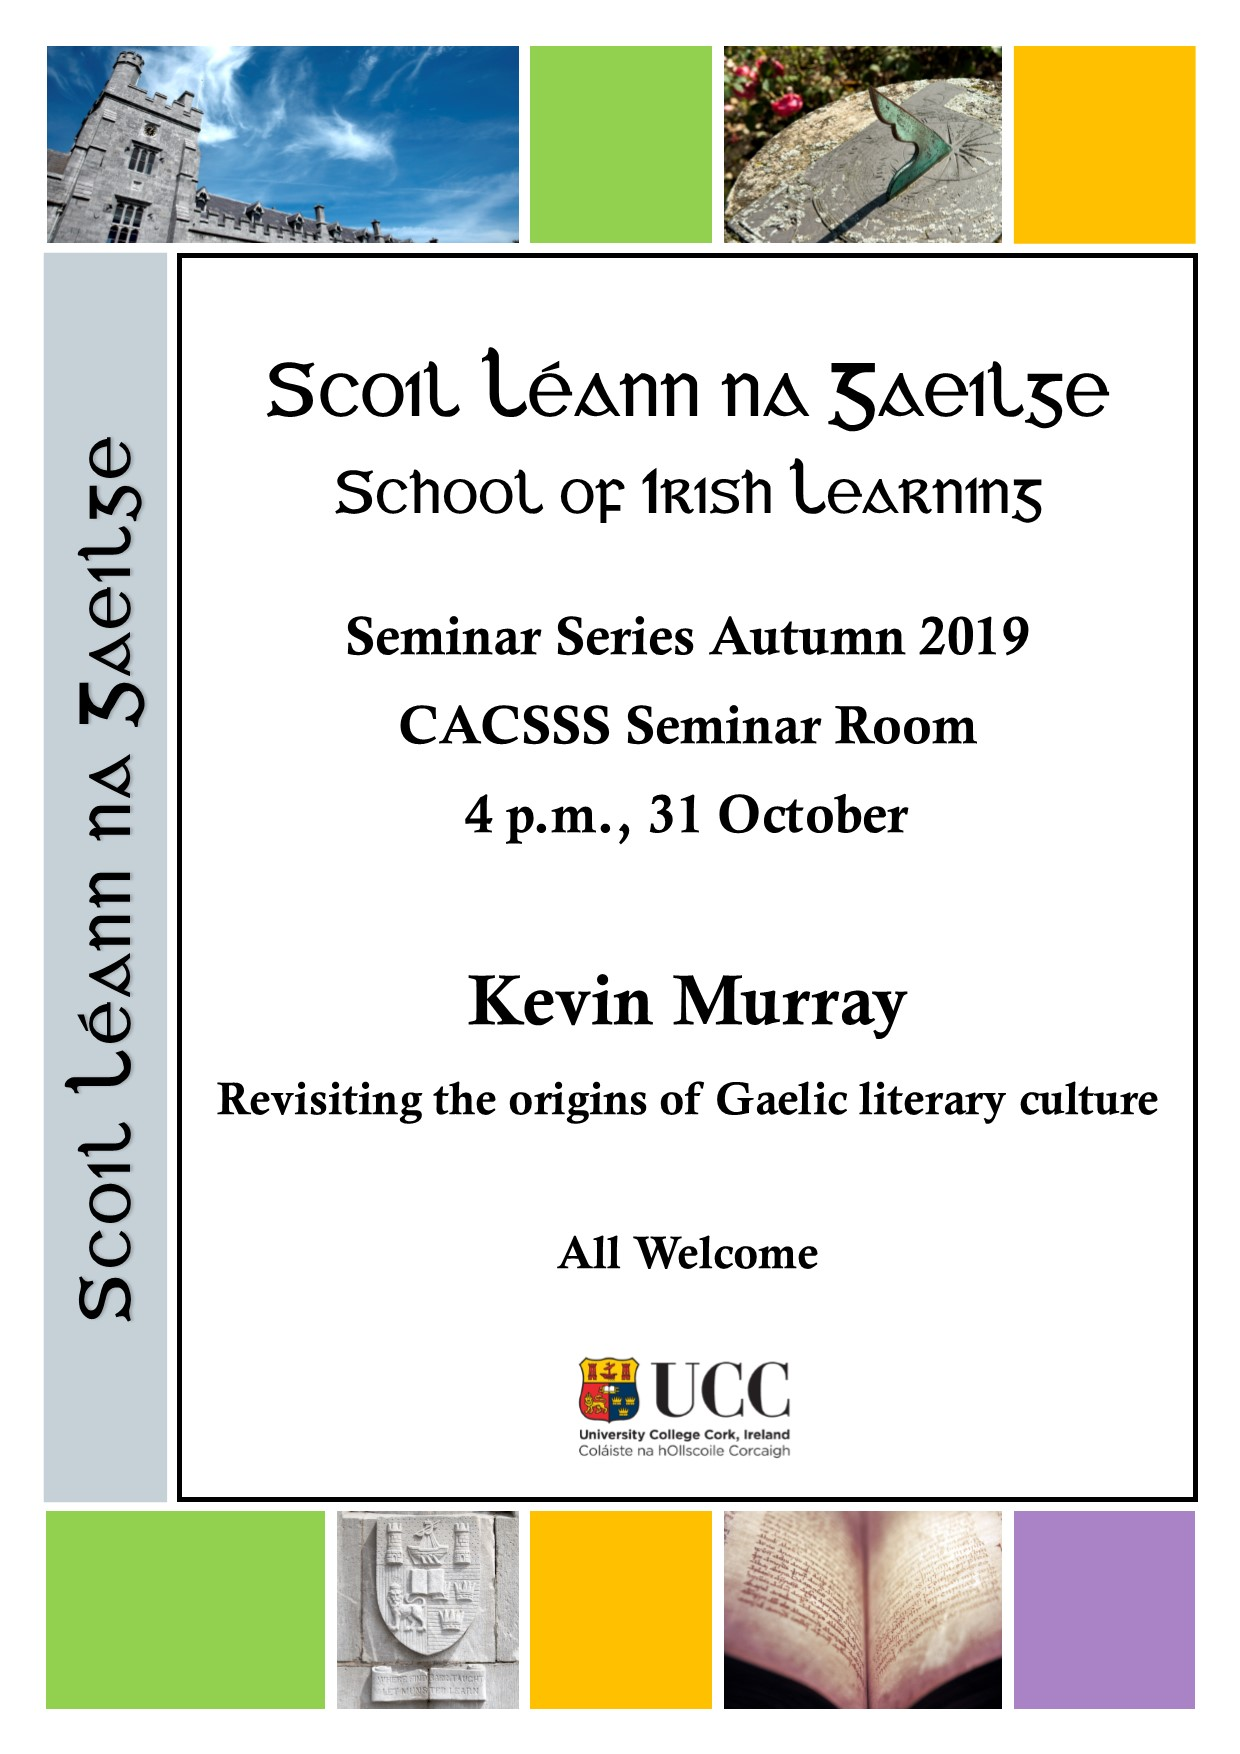 School of Irish Learning Seminar Series